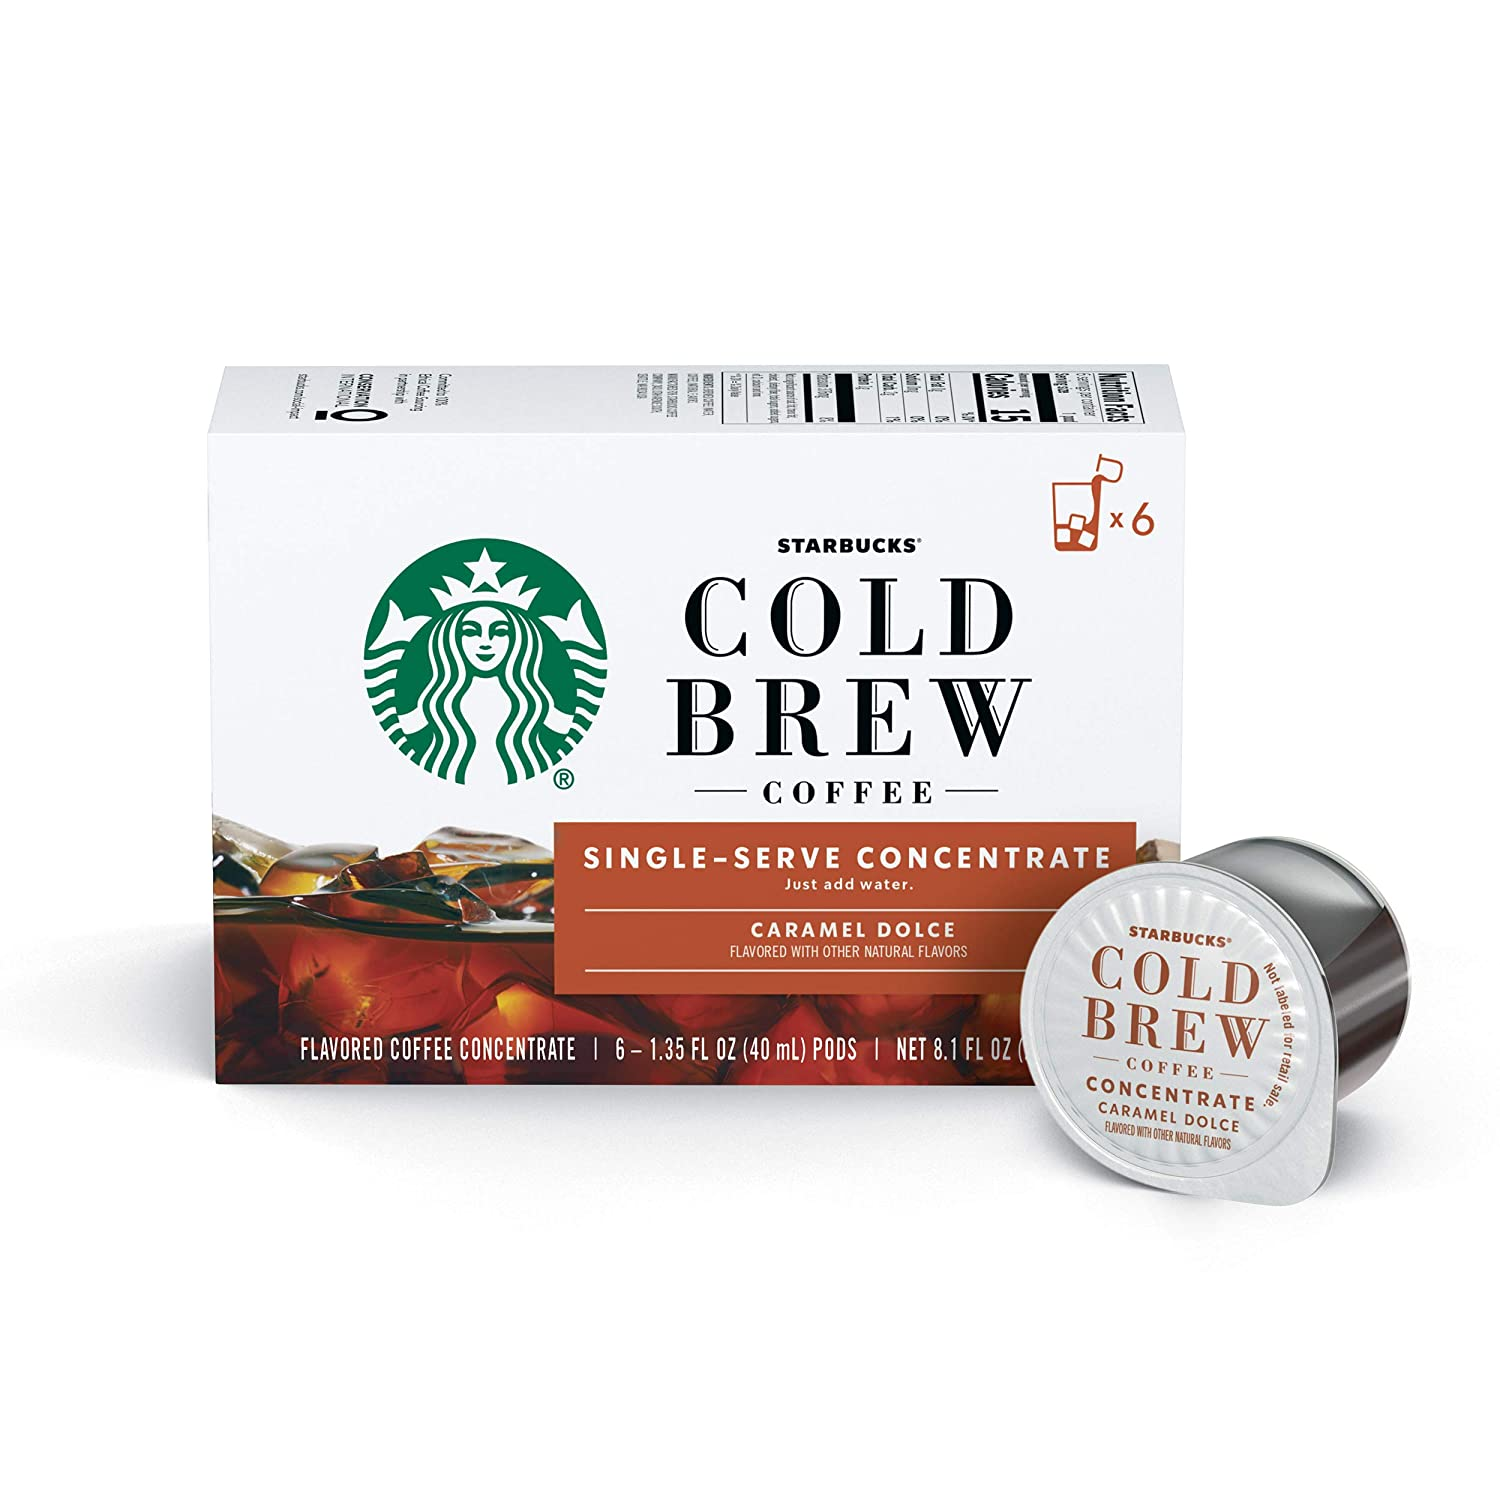 Starbucks Cold Brew Coffee Caramel Dolce Flavored Single-Serve Concentrate Pods 6 boxes (36 capsules total), Coffee Concentrate